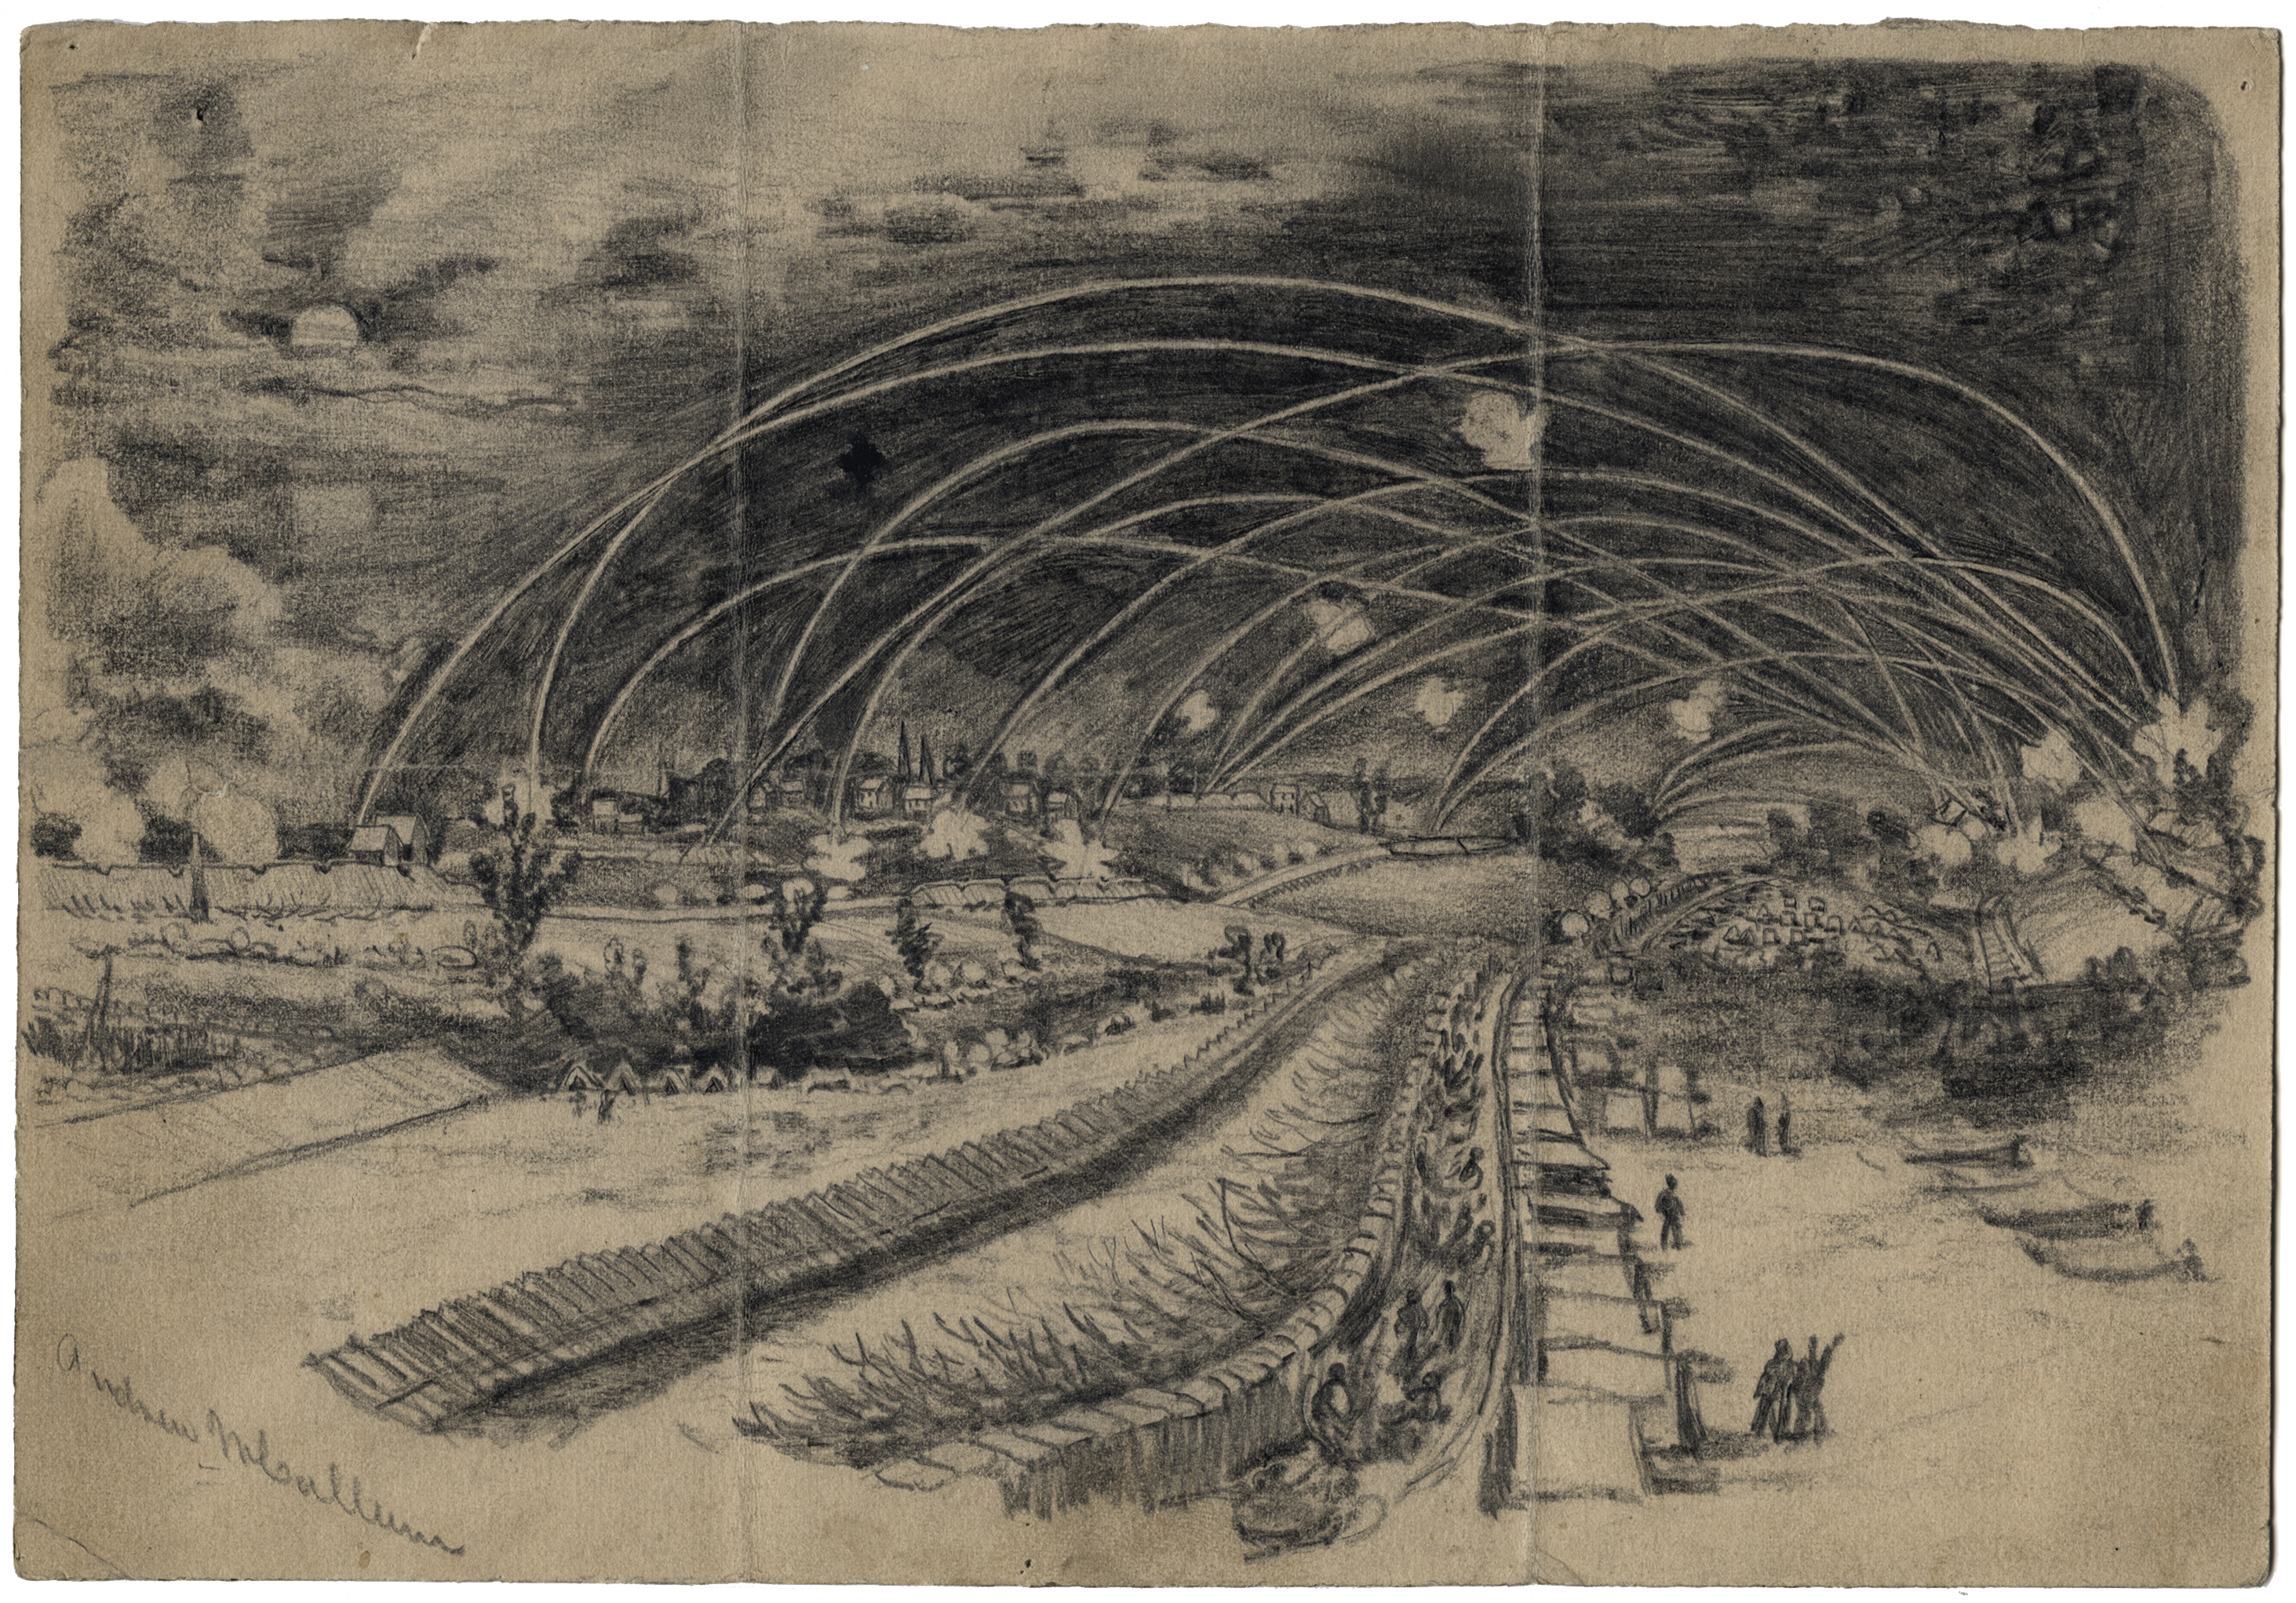 2926x2043 Civil War Era Drawings From The Becker Collection' Opens Sept. 10